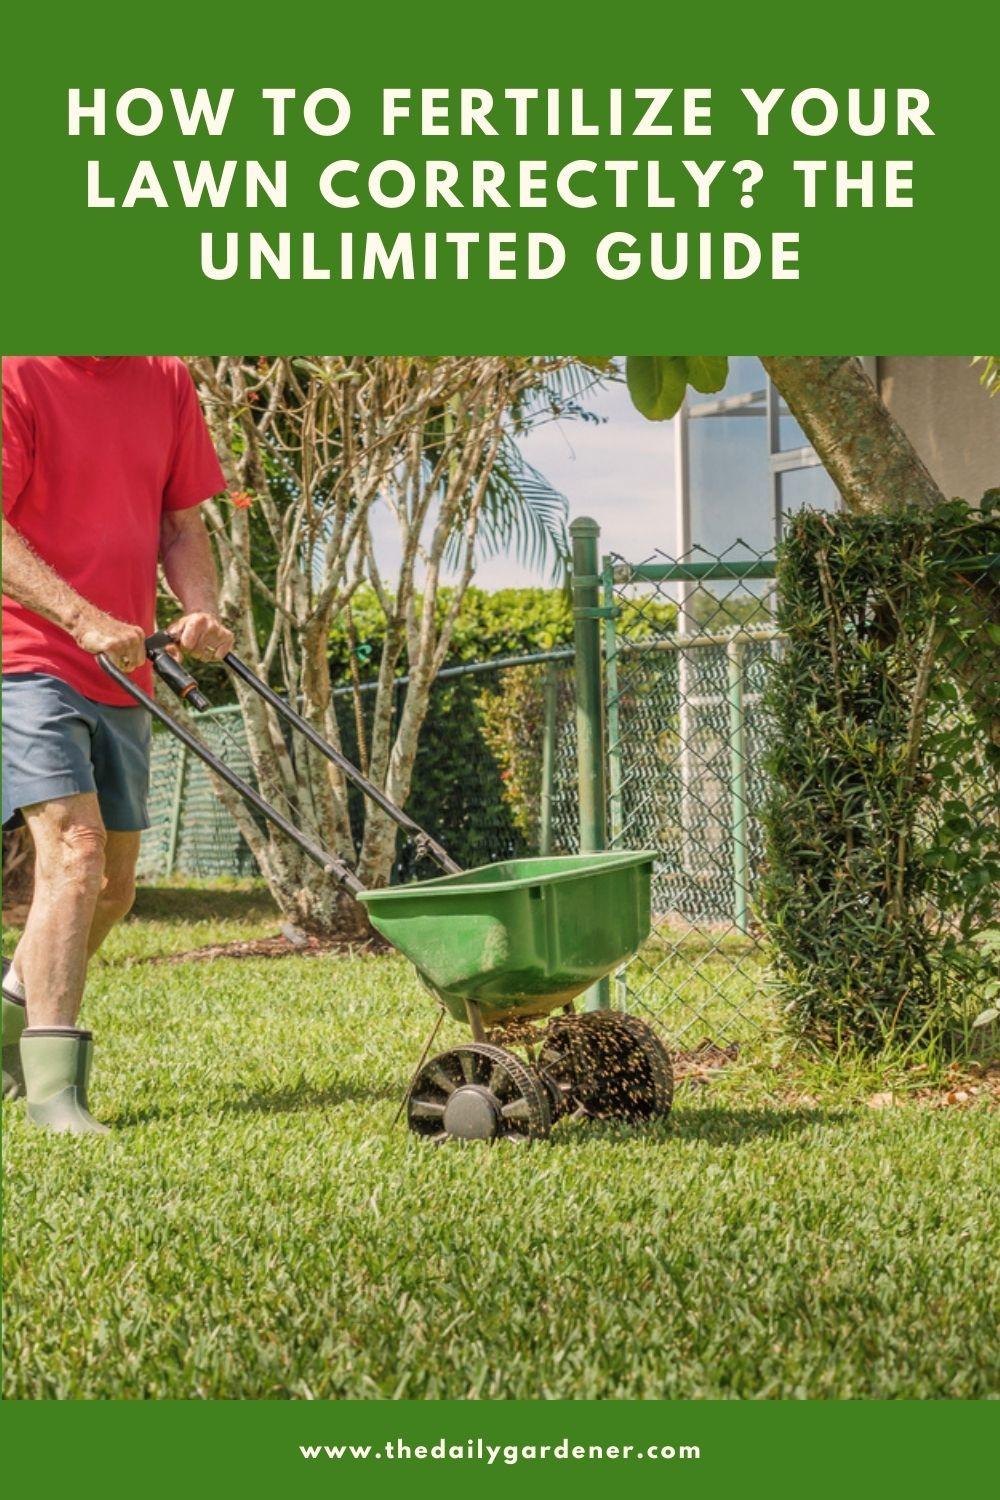 How to Fertilize Your Lawn Correctly The Unlimited Guide 2